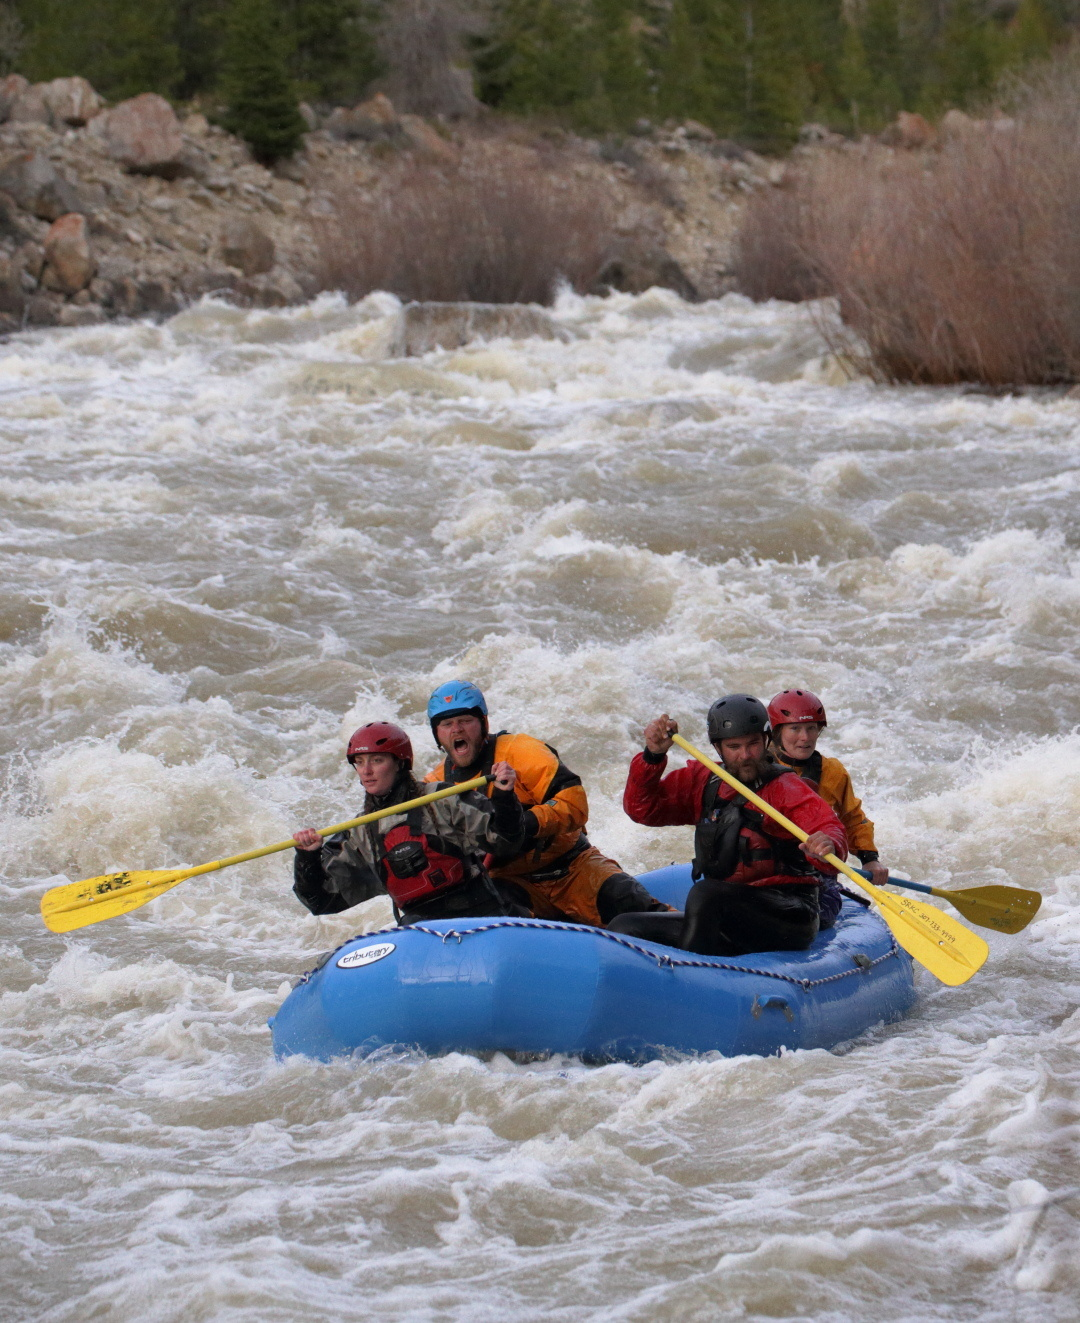 Rafting the Gros Venture river